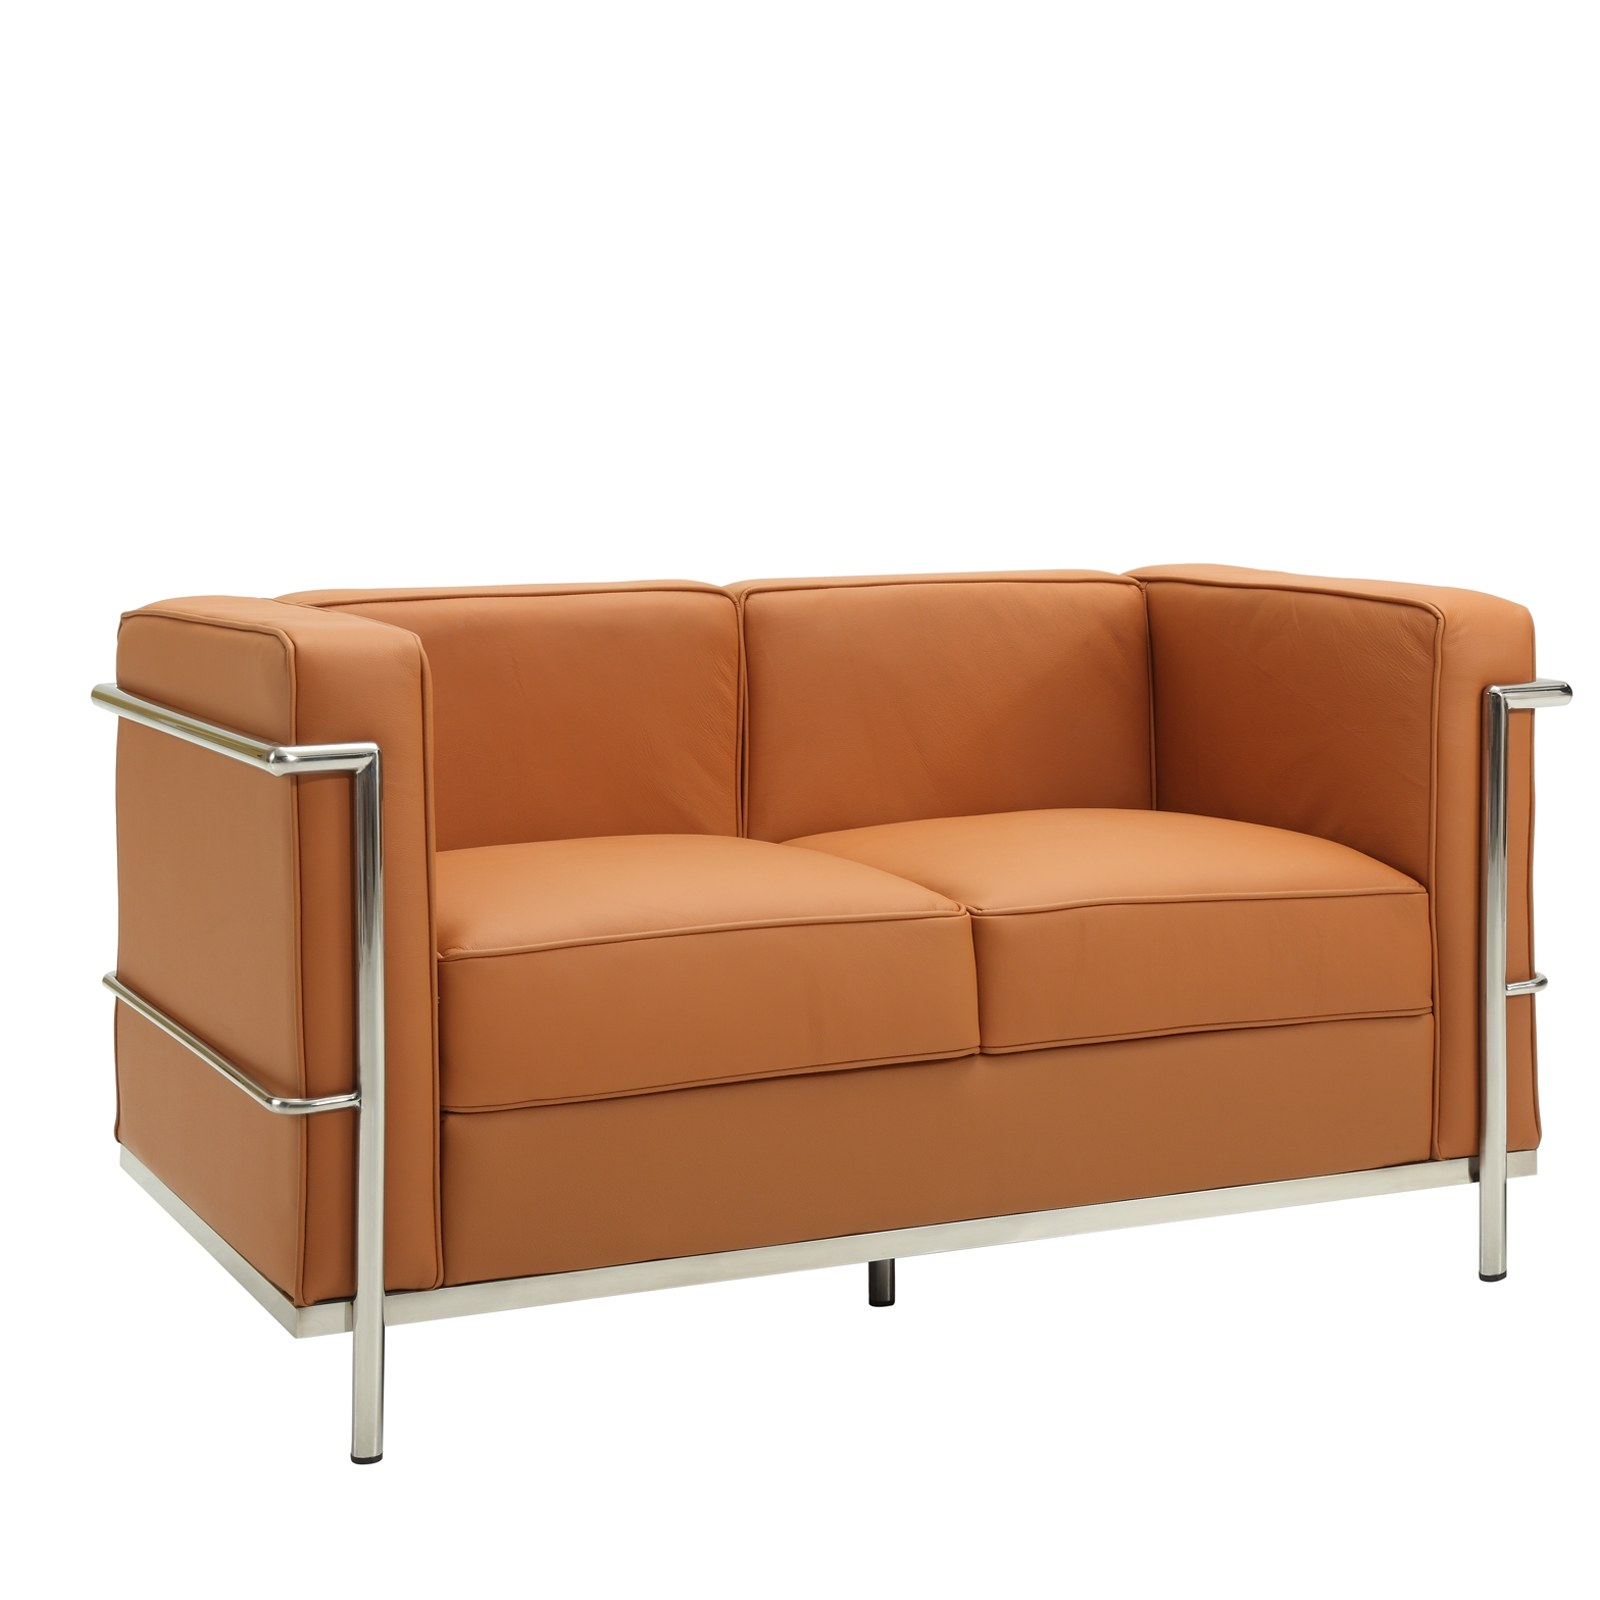 online off second hand loveseat modern sofas used tan buy